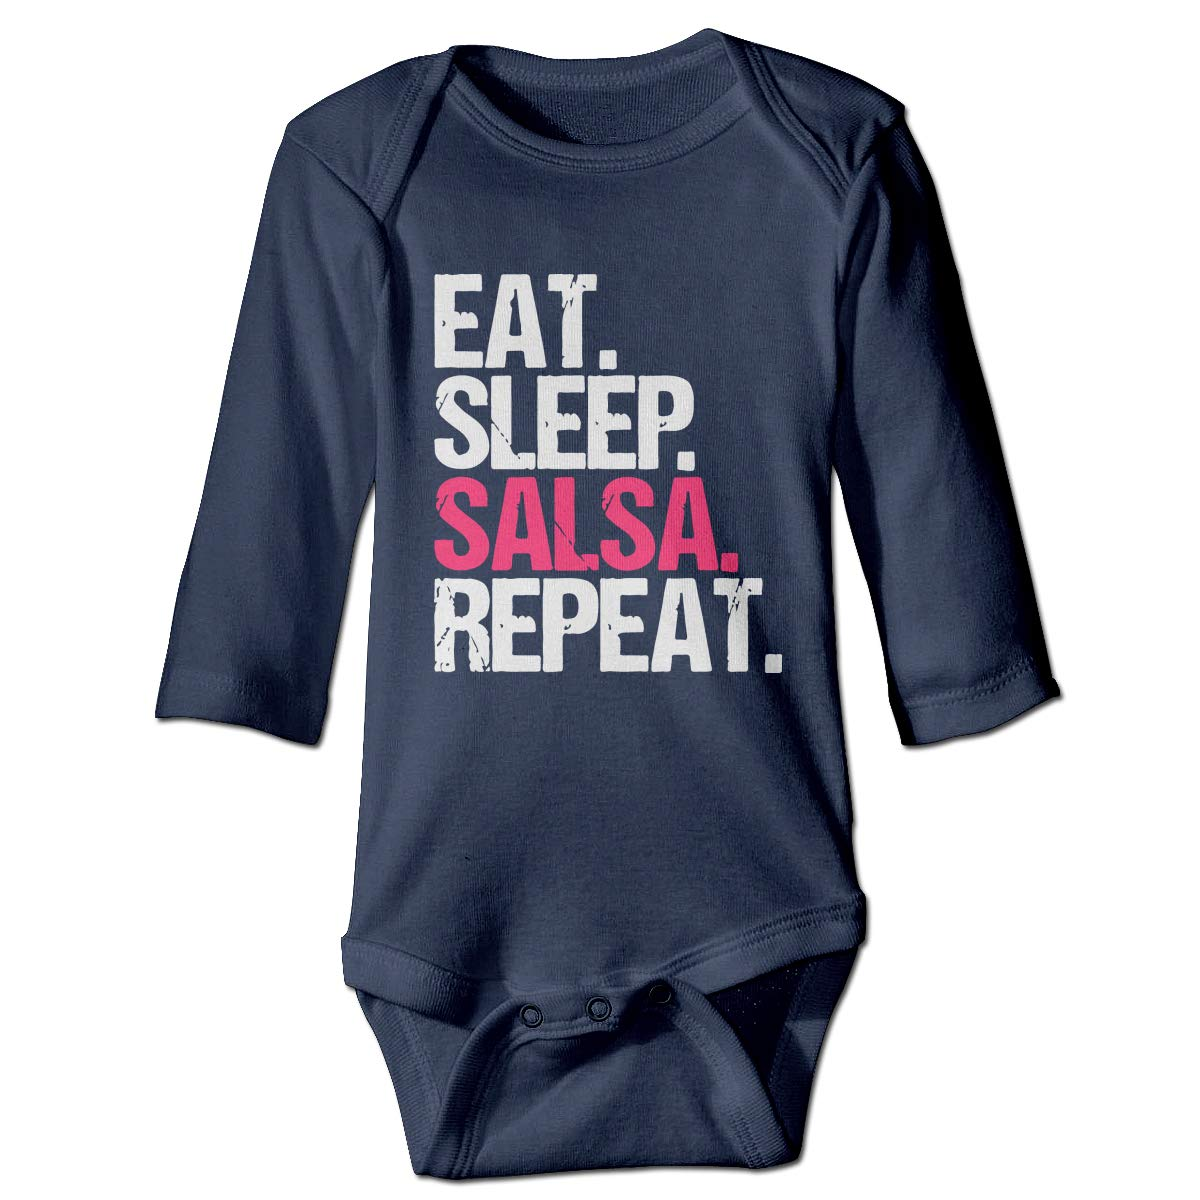 A14UBP Baby Infant Toddler Romper Bodysuit Jumpsuit Eat Sleep Salsa Repeat1 Long Sleeve Funny Baby Clothes